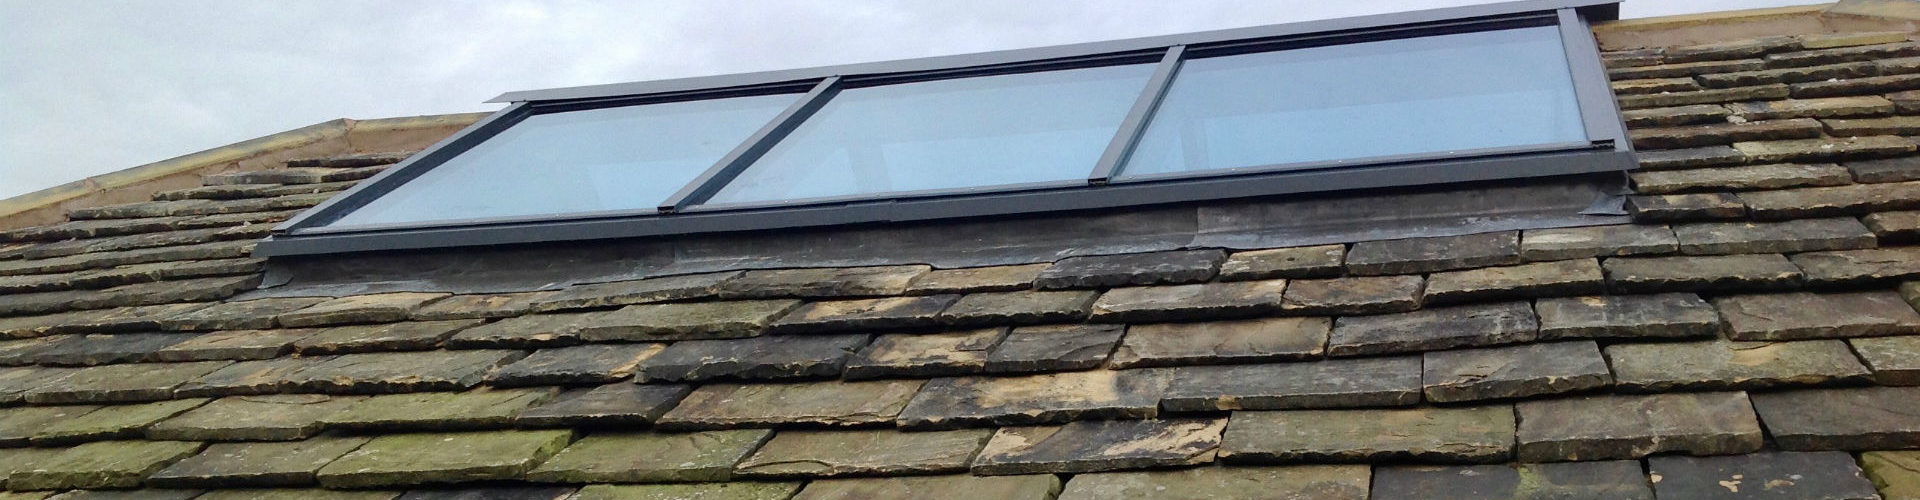 Home Elland Roofing Supplies